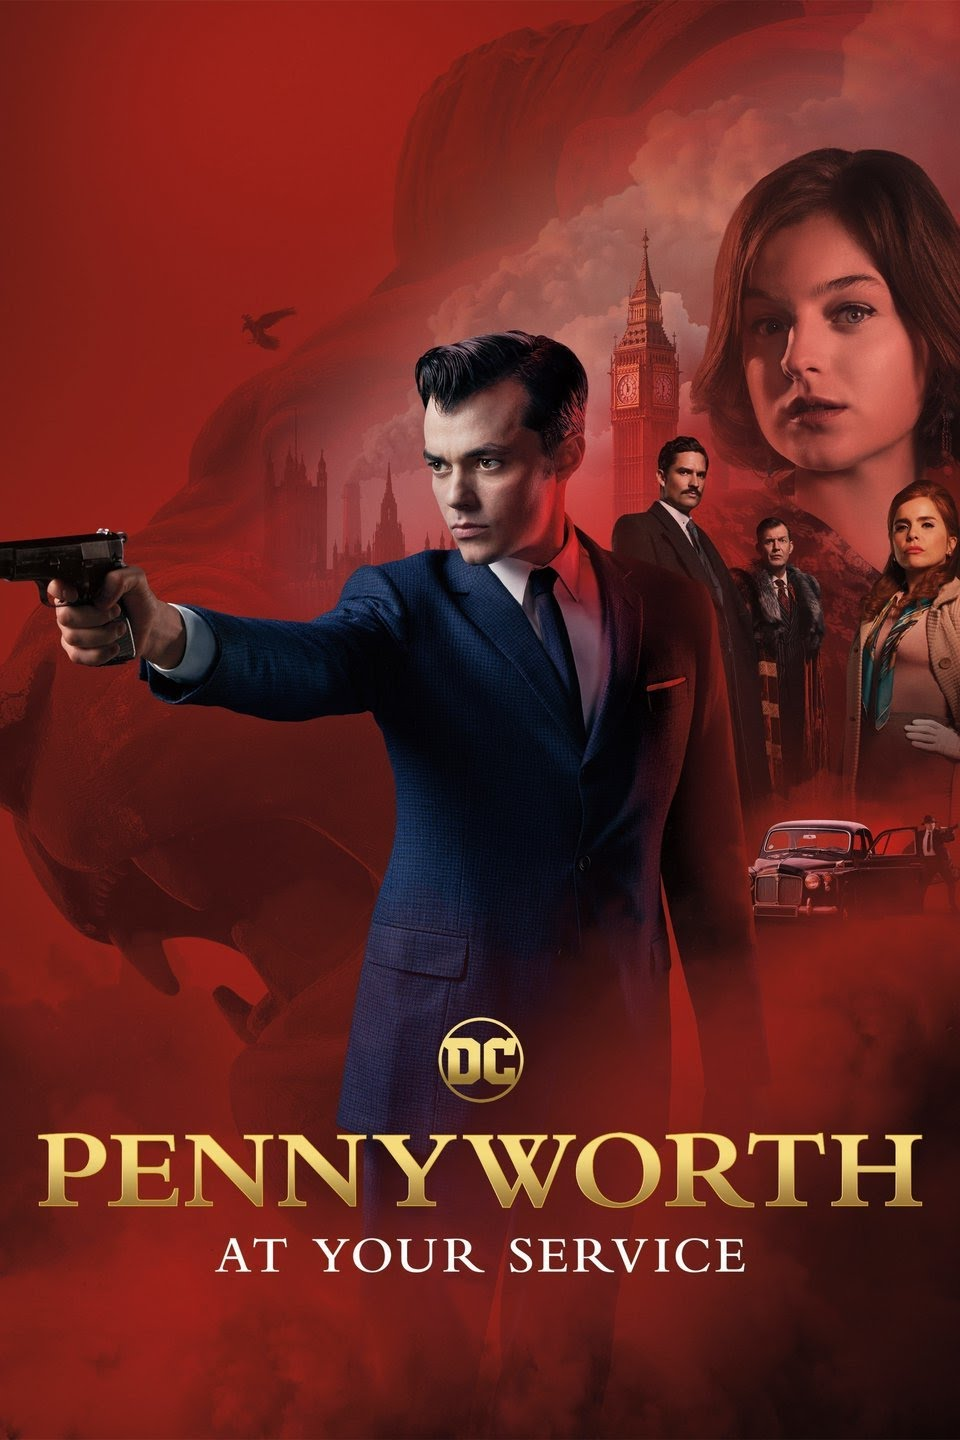 Pennyworth 2019 S02E03 English 720p HDRip ESub 300MB Download